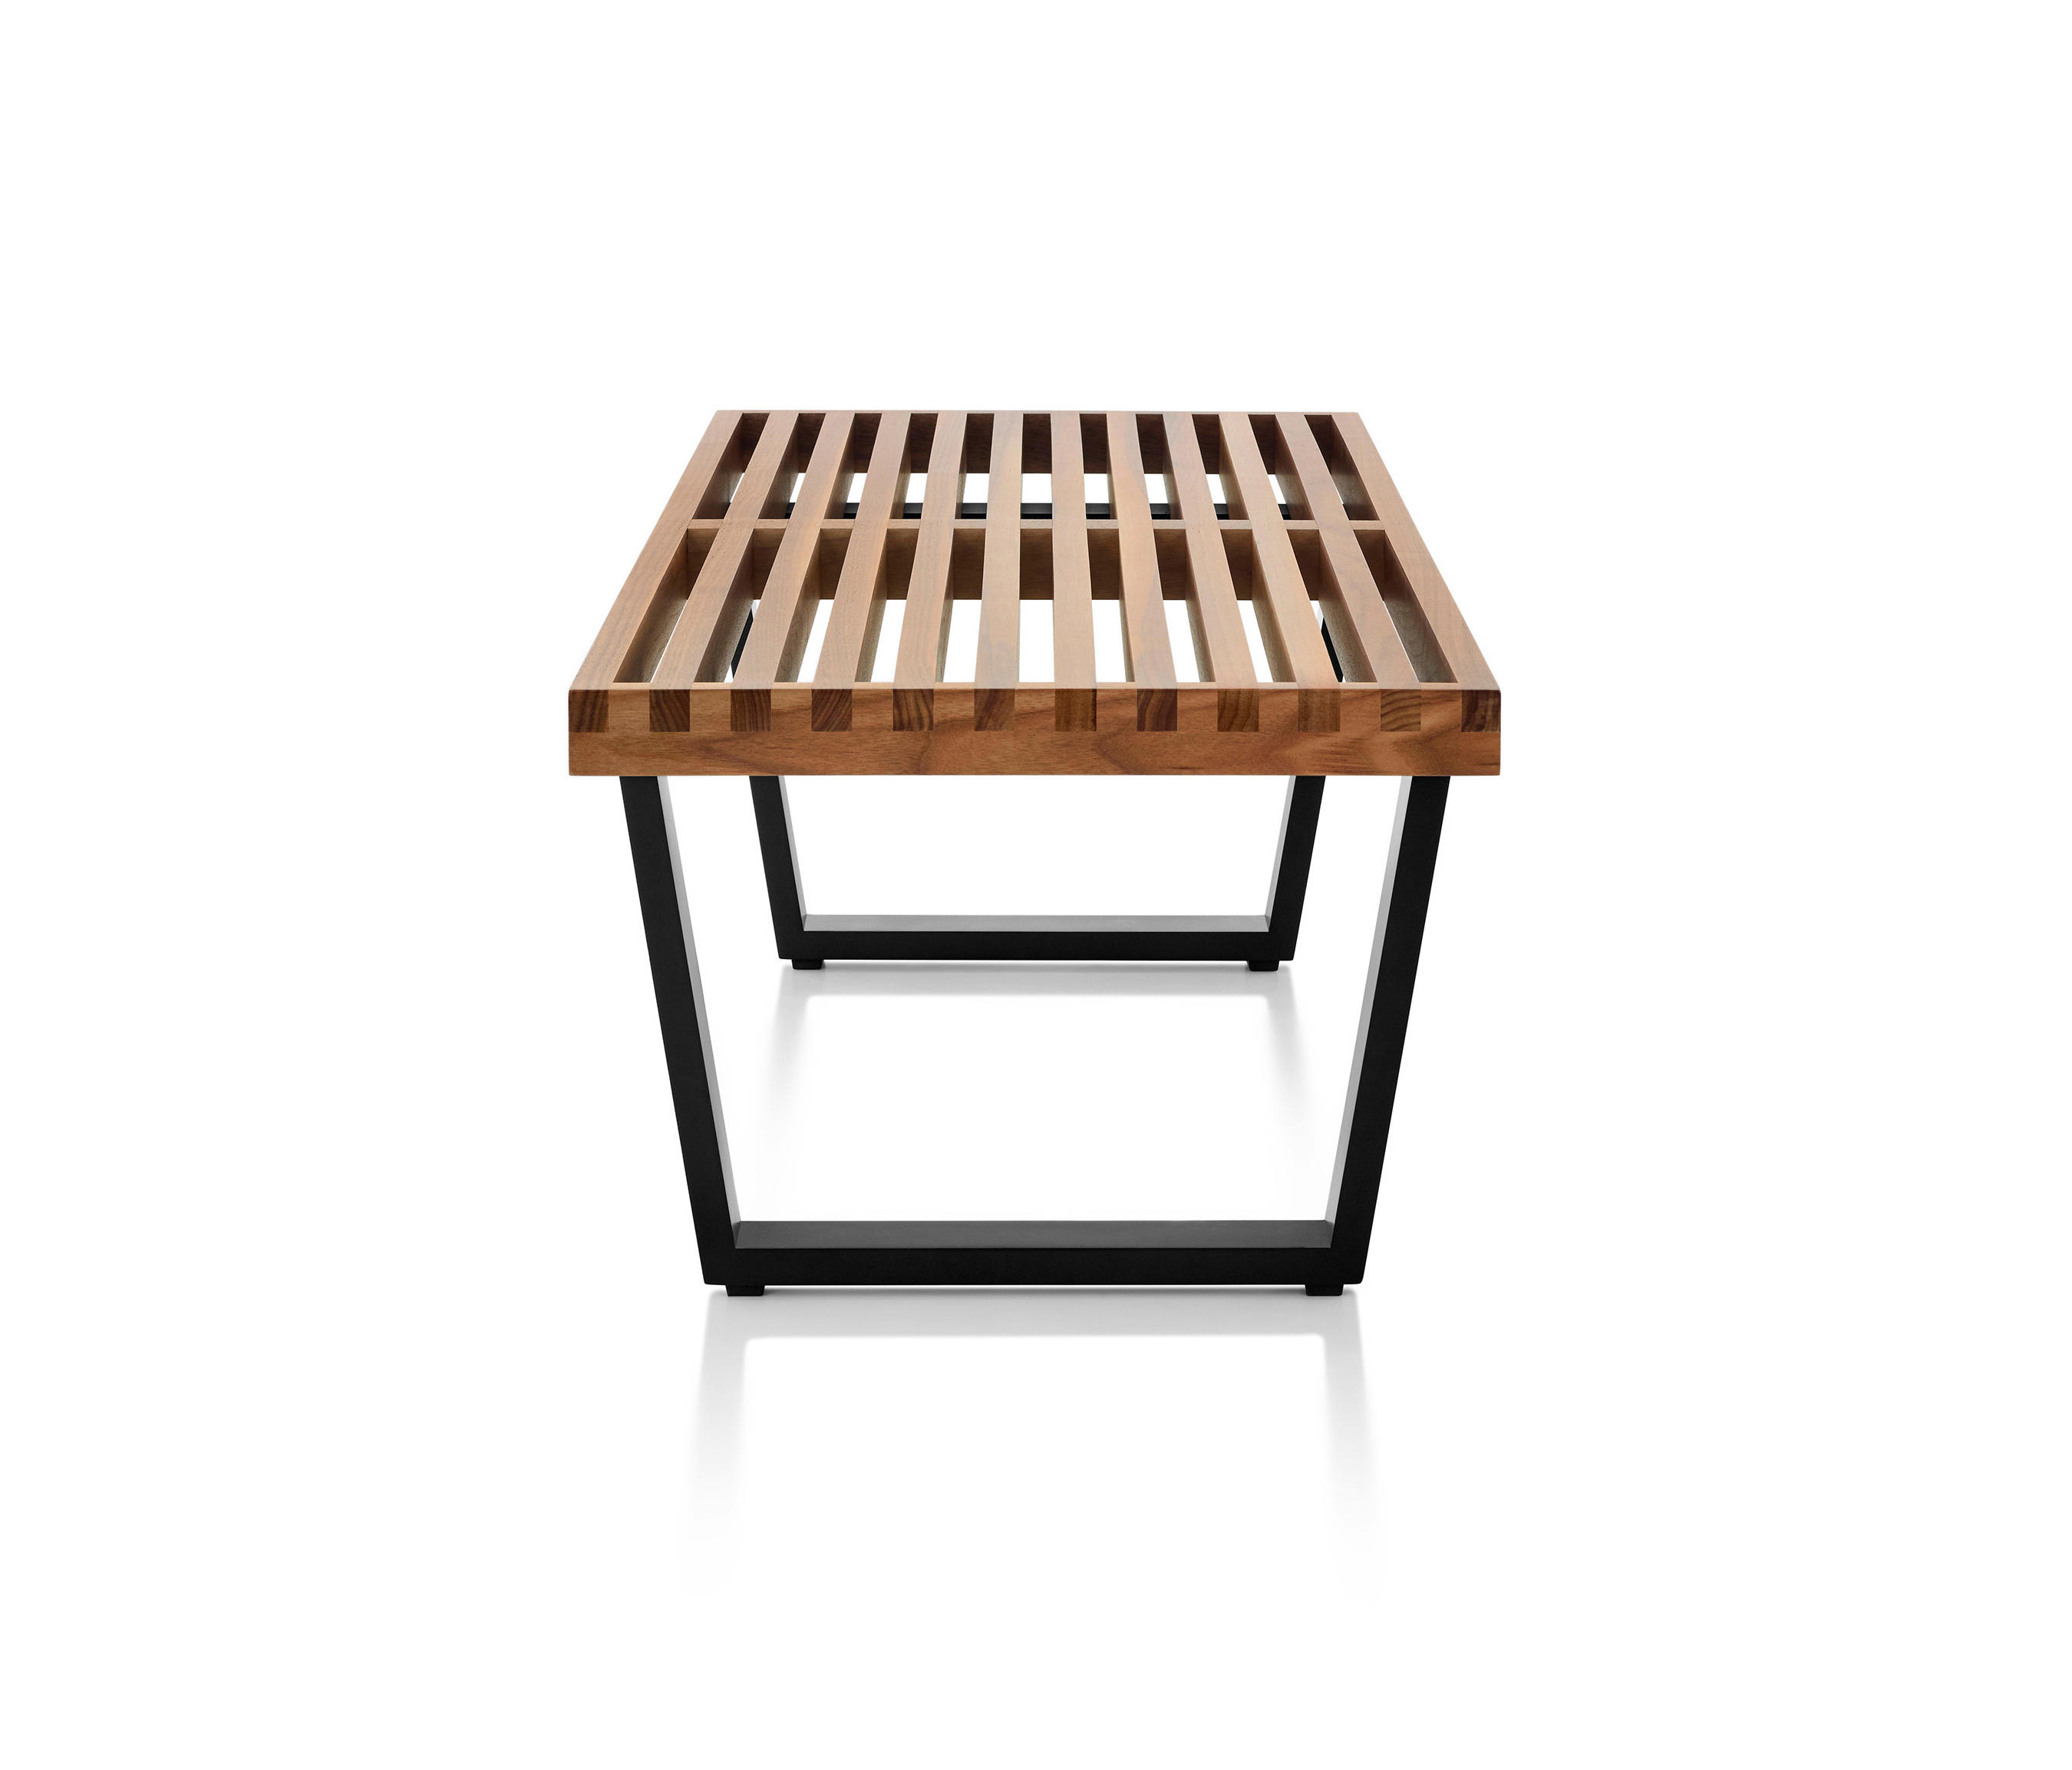 teak modern find by mid s designed bench herman outstanding torbjorn coffee table for furniture century showroom afdal in the bruksbo miller fabulous